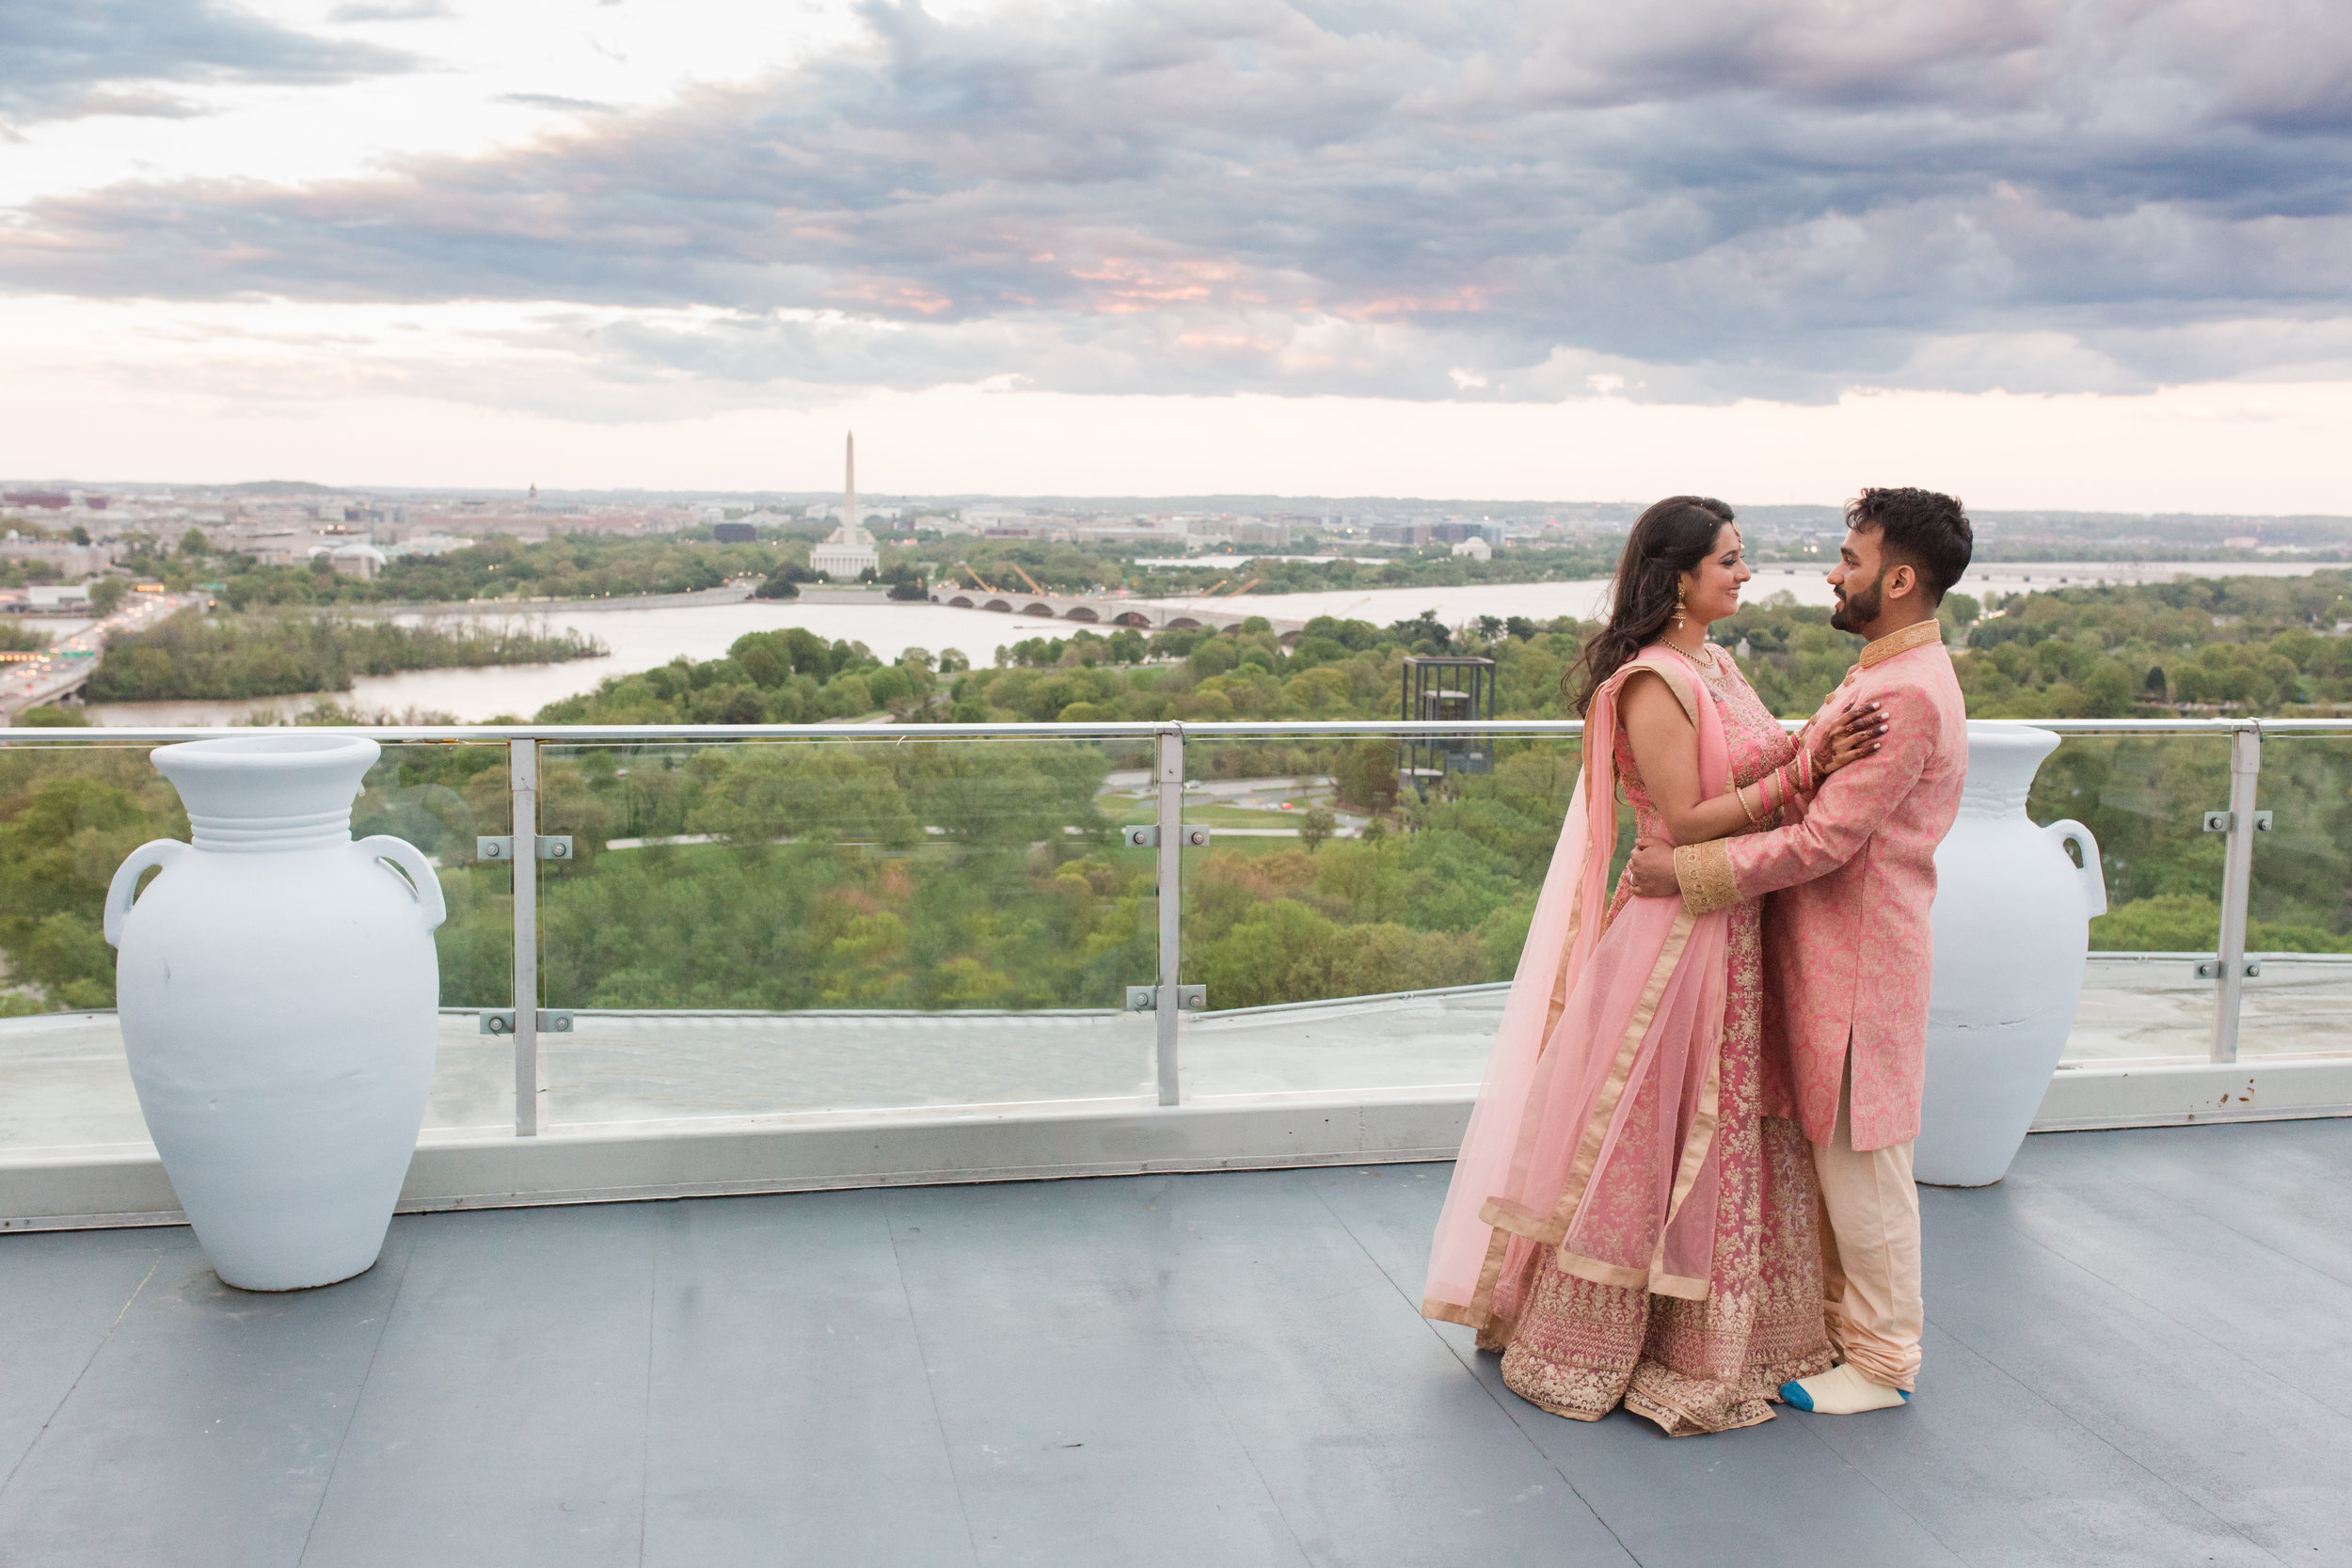 anumeet and gopika portrait, top of the town terrace, with distraction edited out.jpg